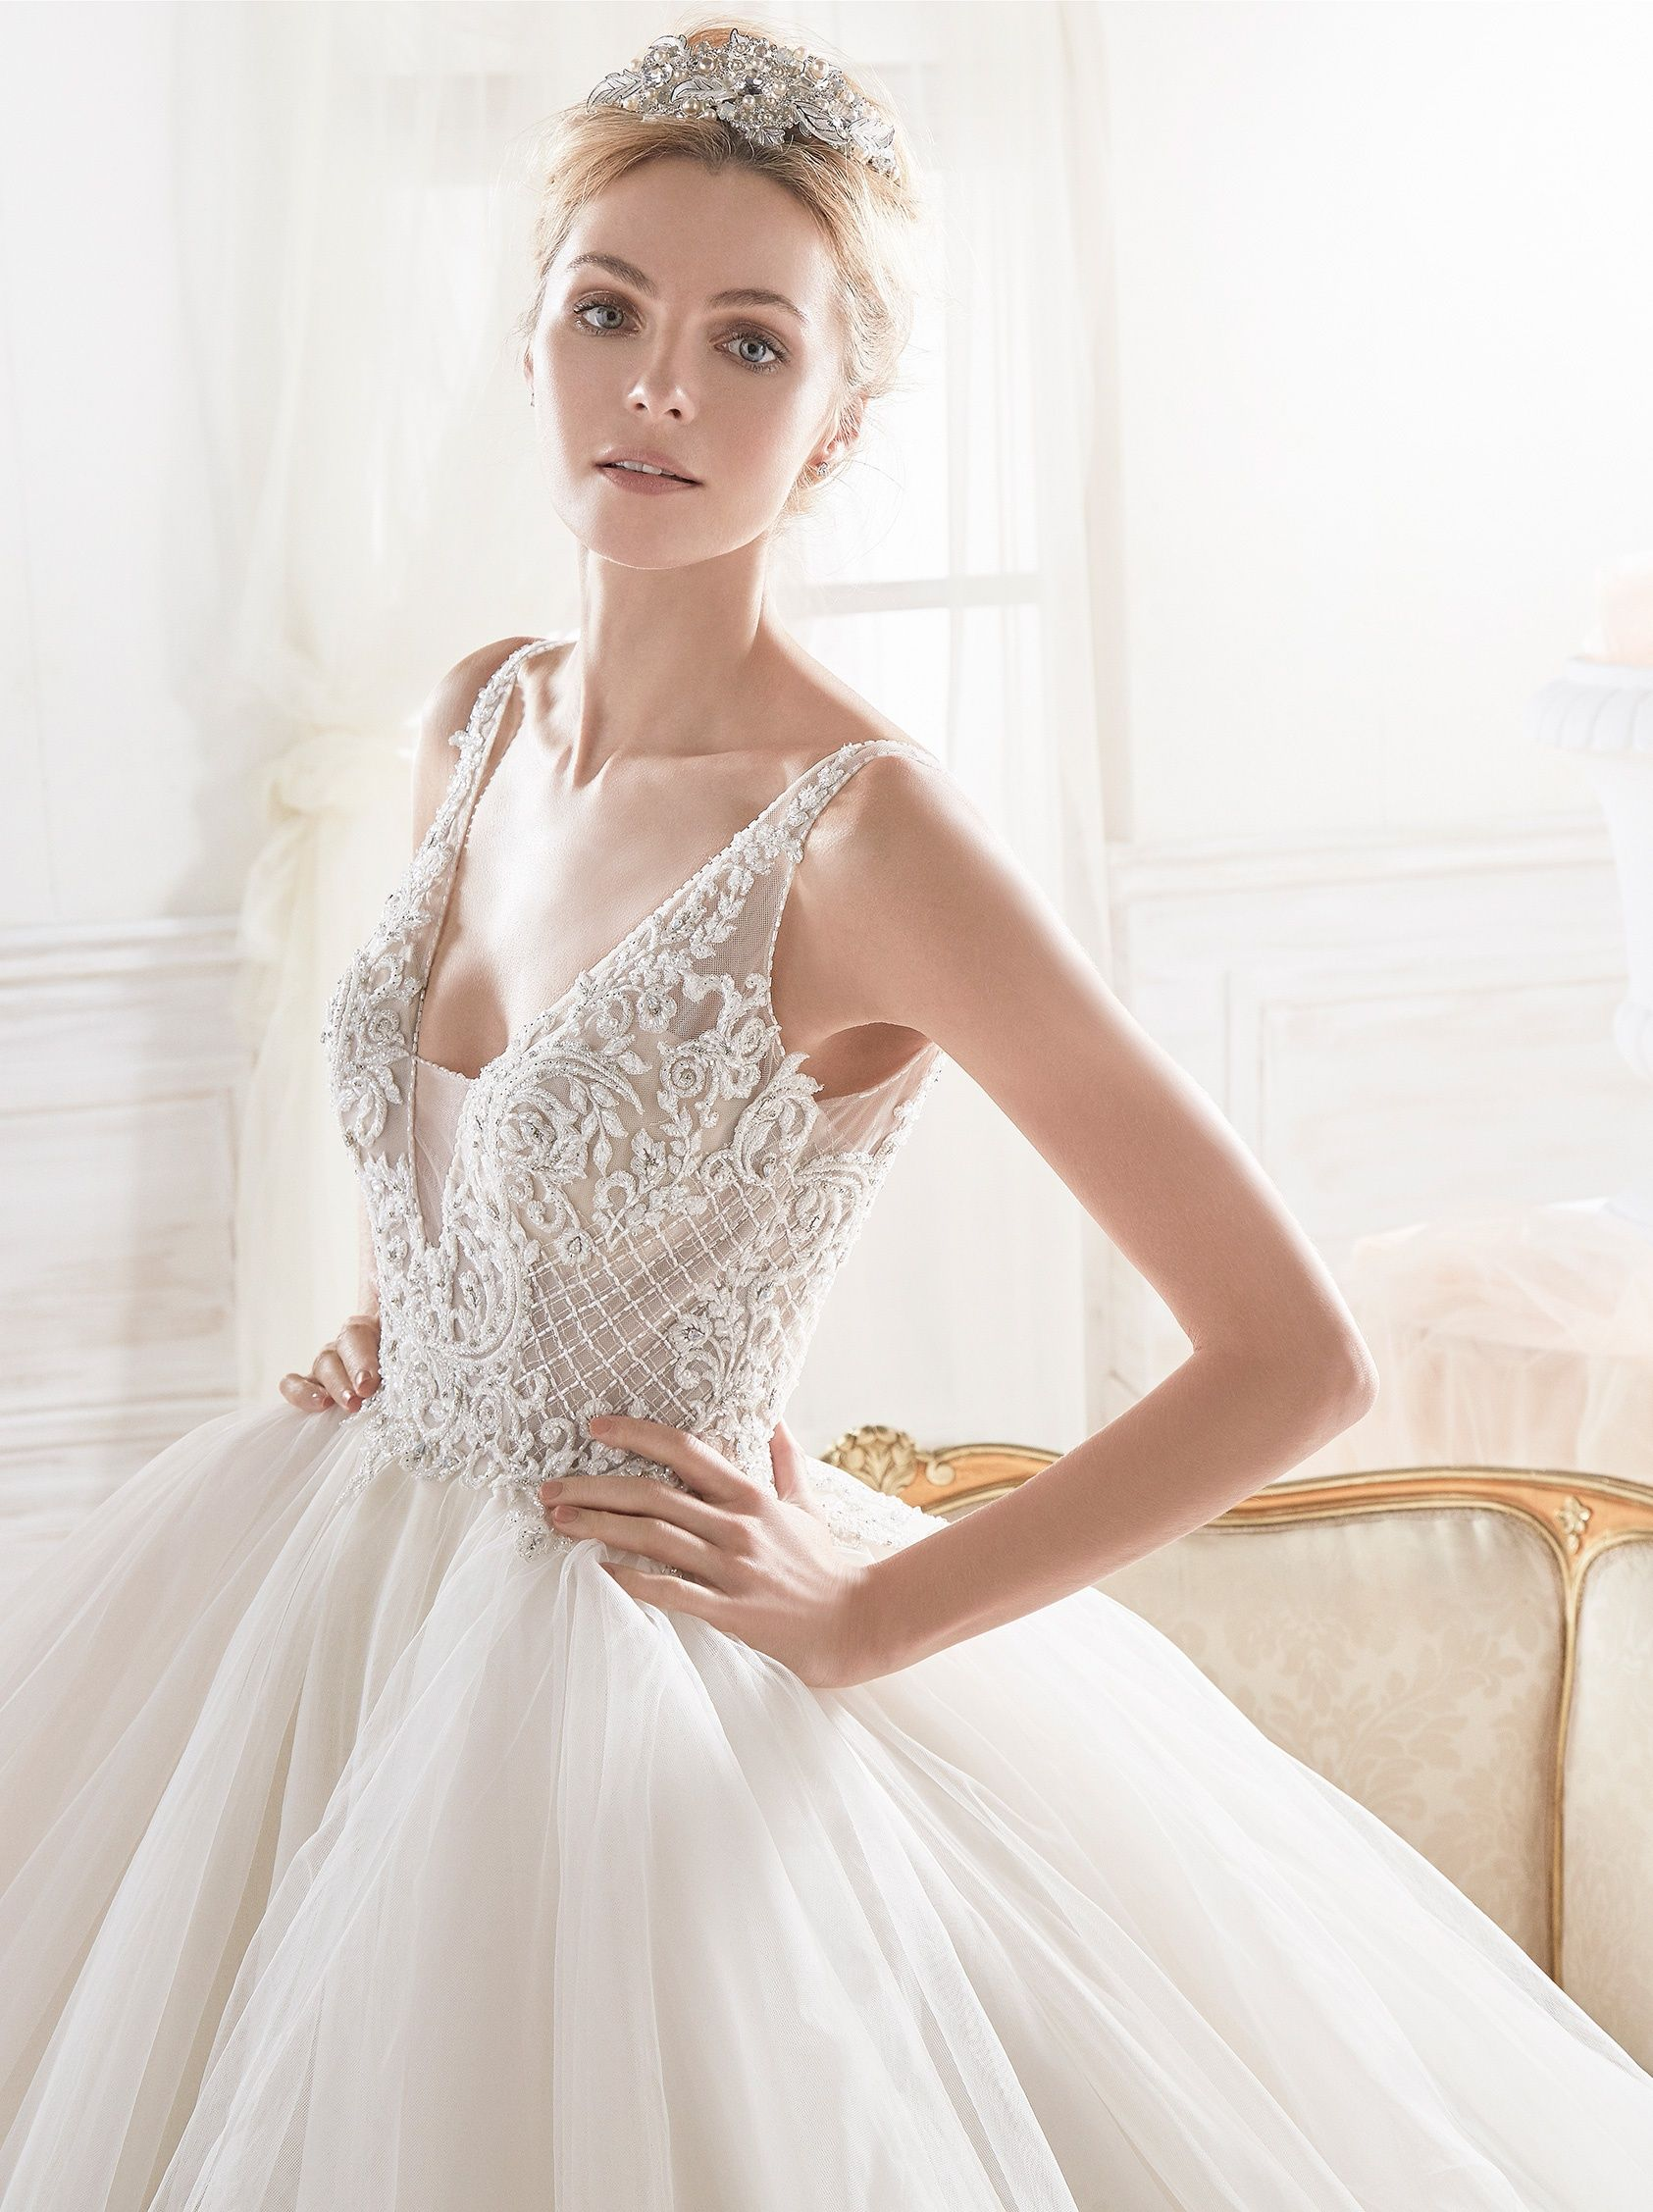 Nicole bridal collection niab at the altar fashion